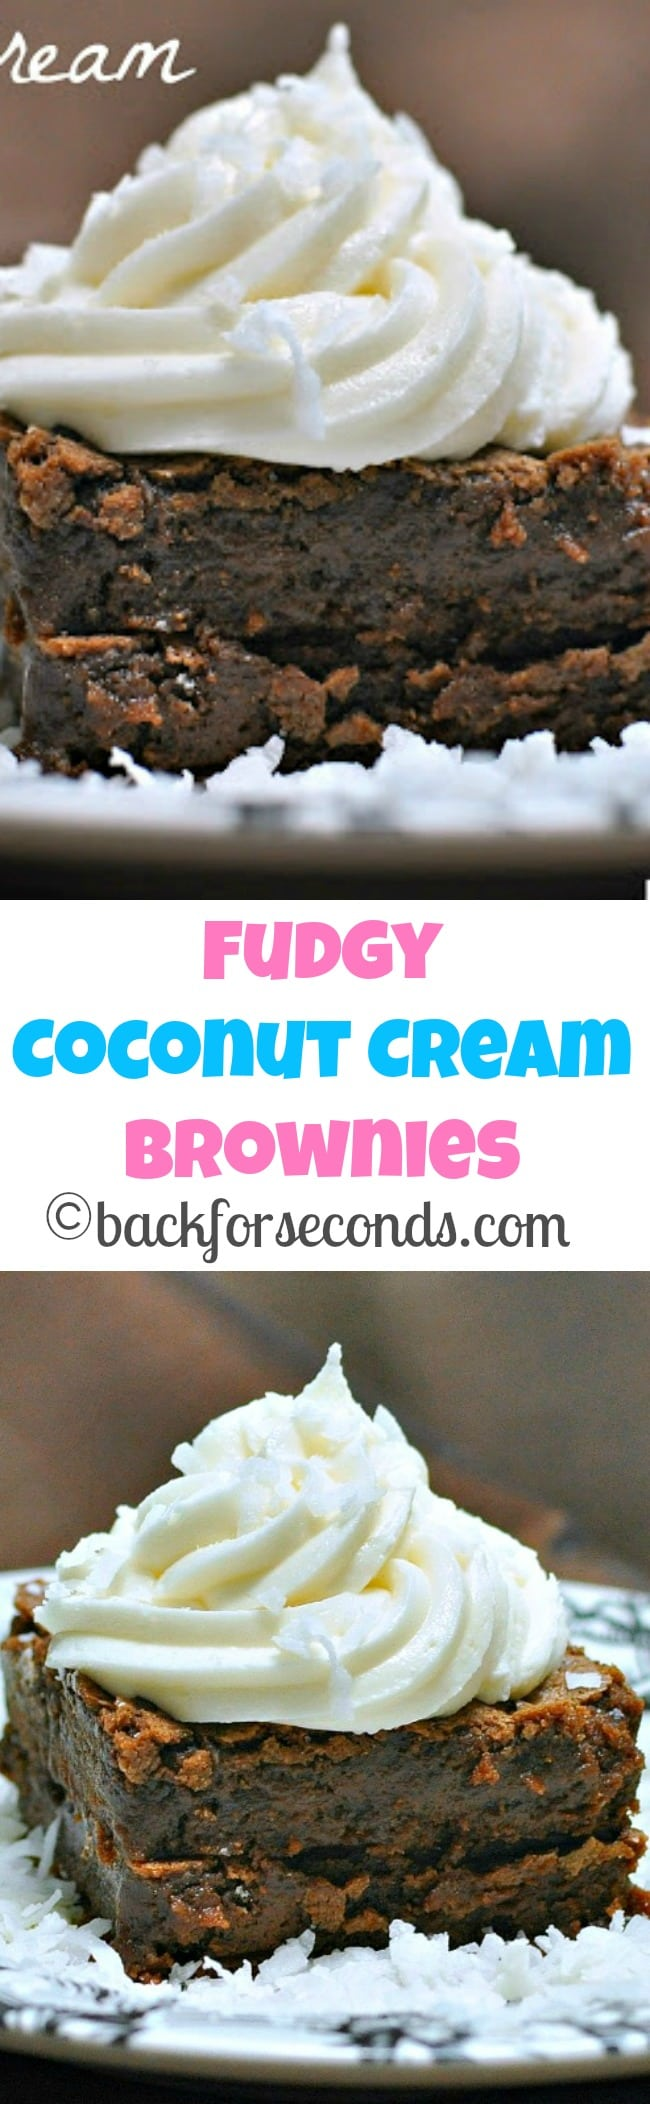 Coconut Cream Brownies - Super fudgy brownies with dreamy coconut cream frosting!